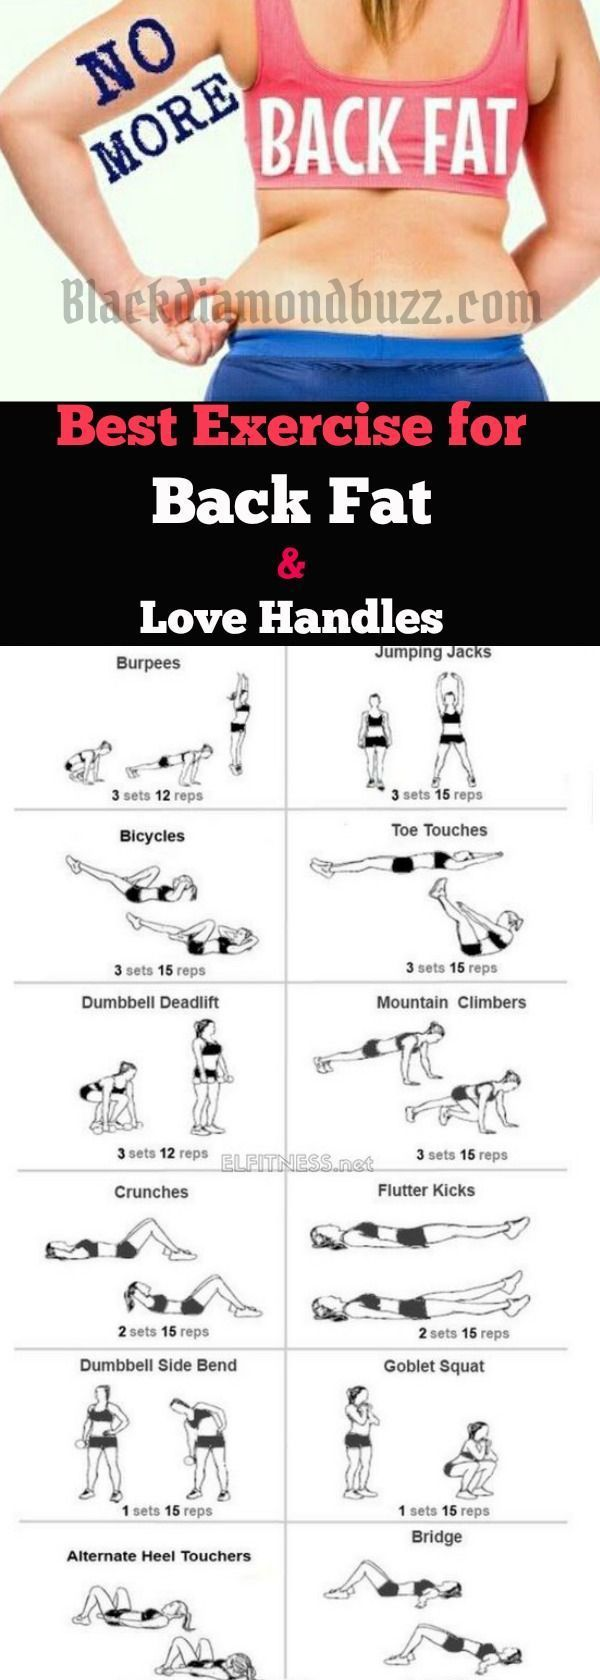 Best exercises for back fat and love handles for women at home.These Workouts will reduce the lower back fat fast and tone your body. burn fat back